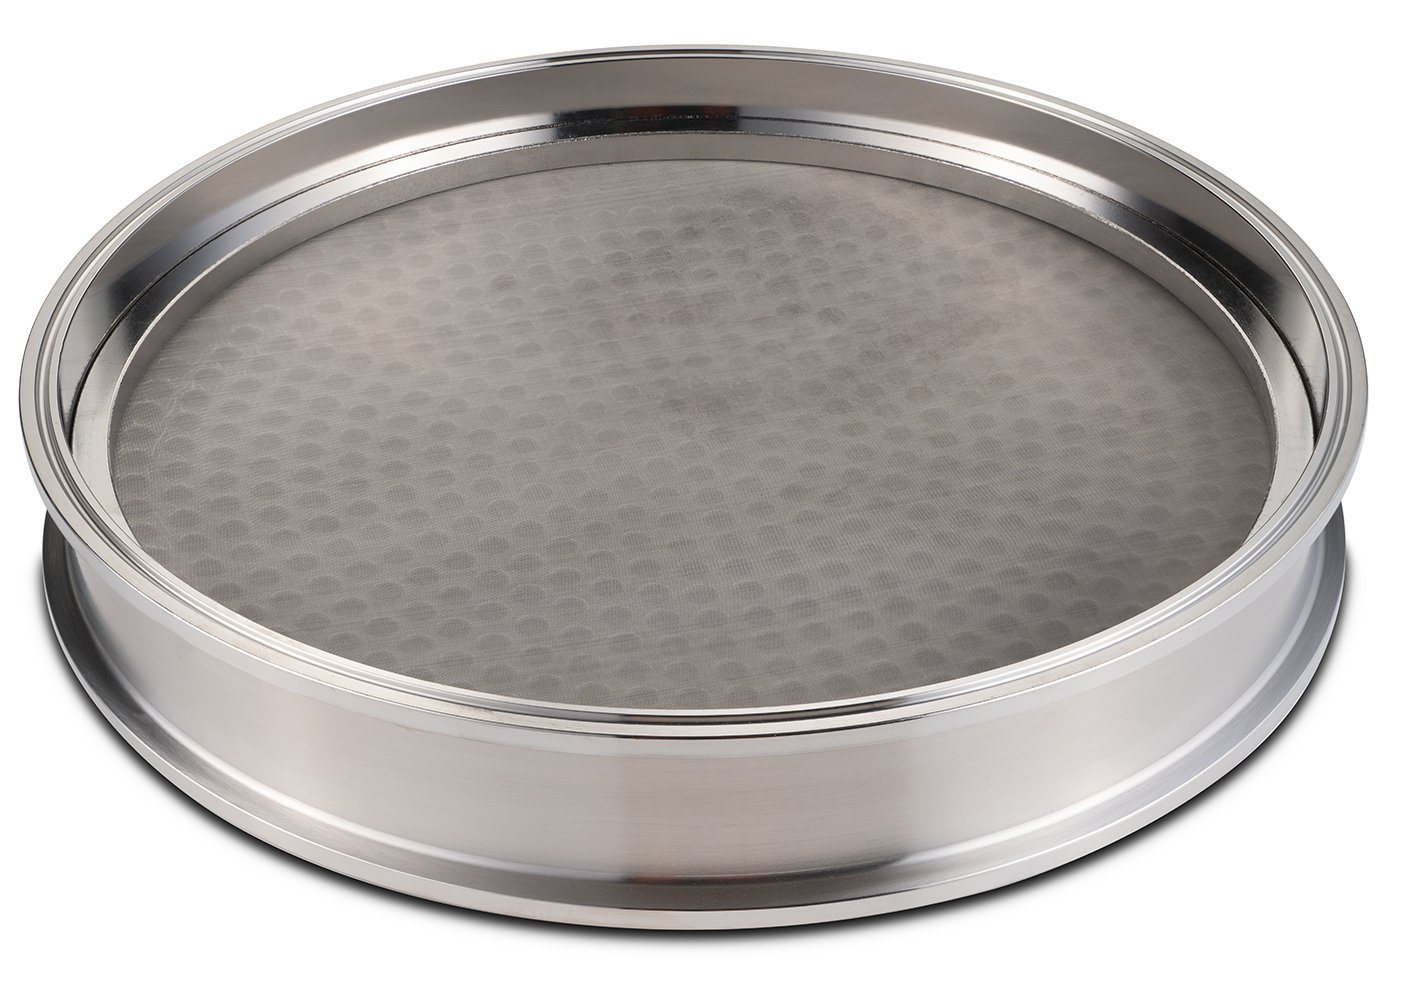 BVV 1.5 Inch 304 Stainless Steel Tri-Clamp Filter Plate